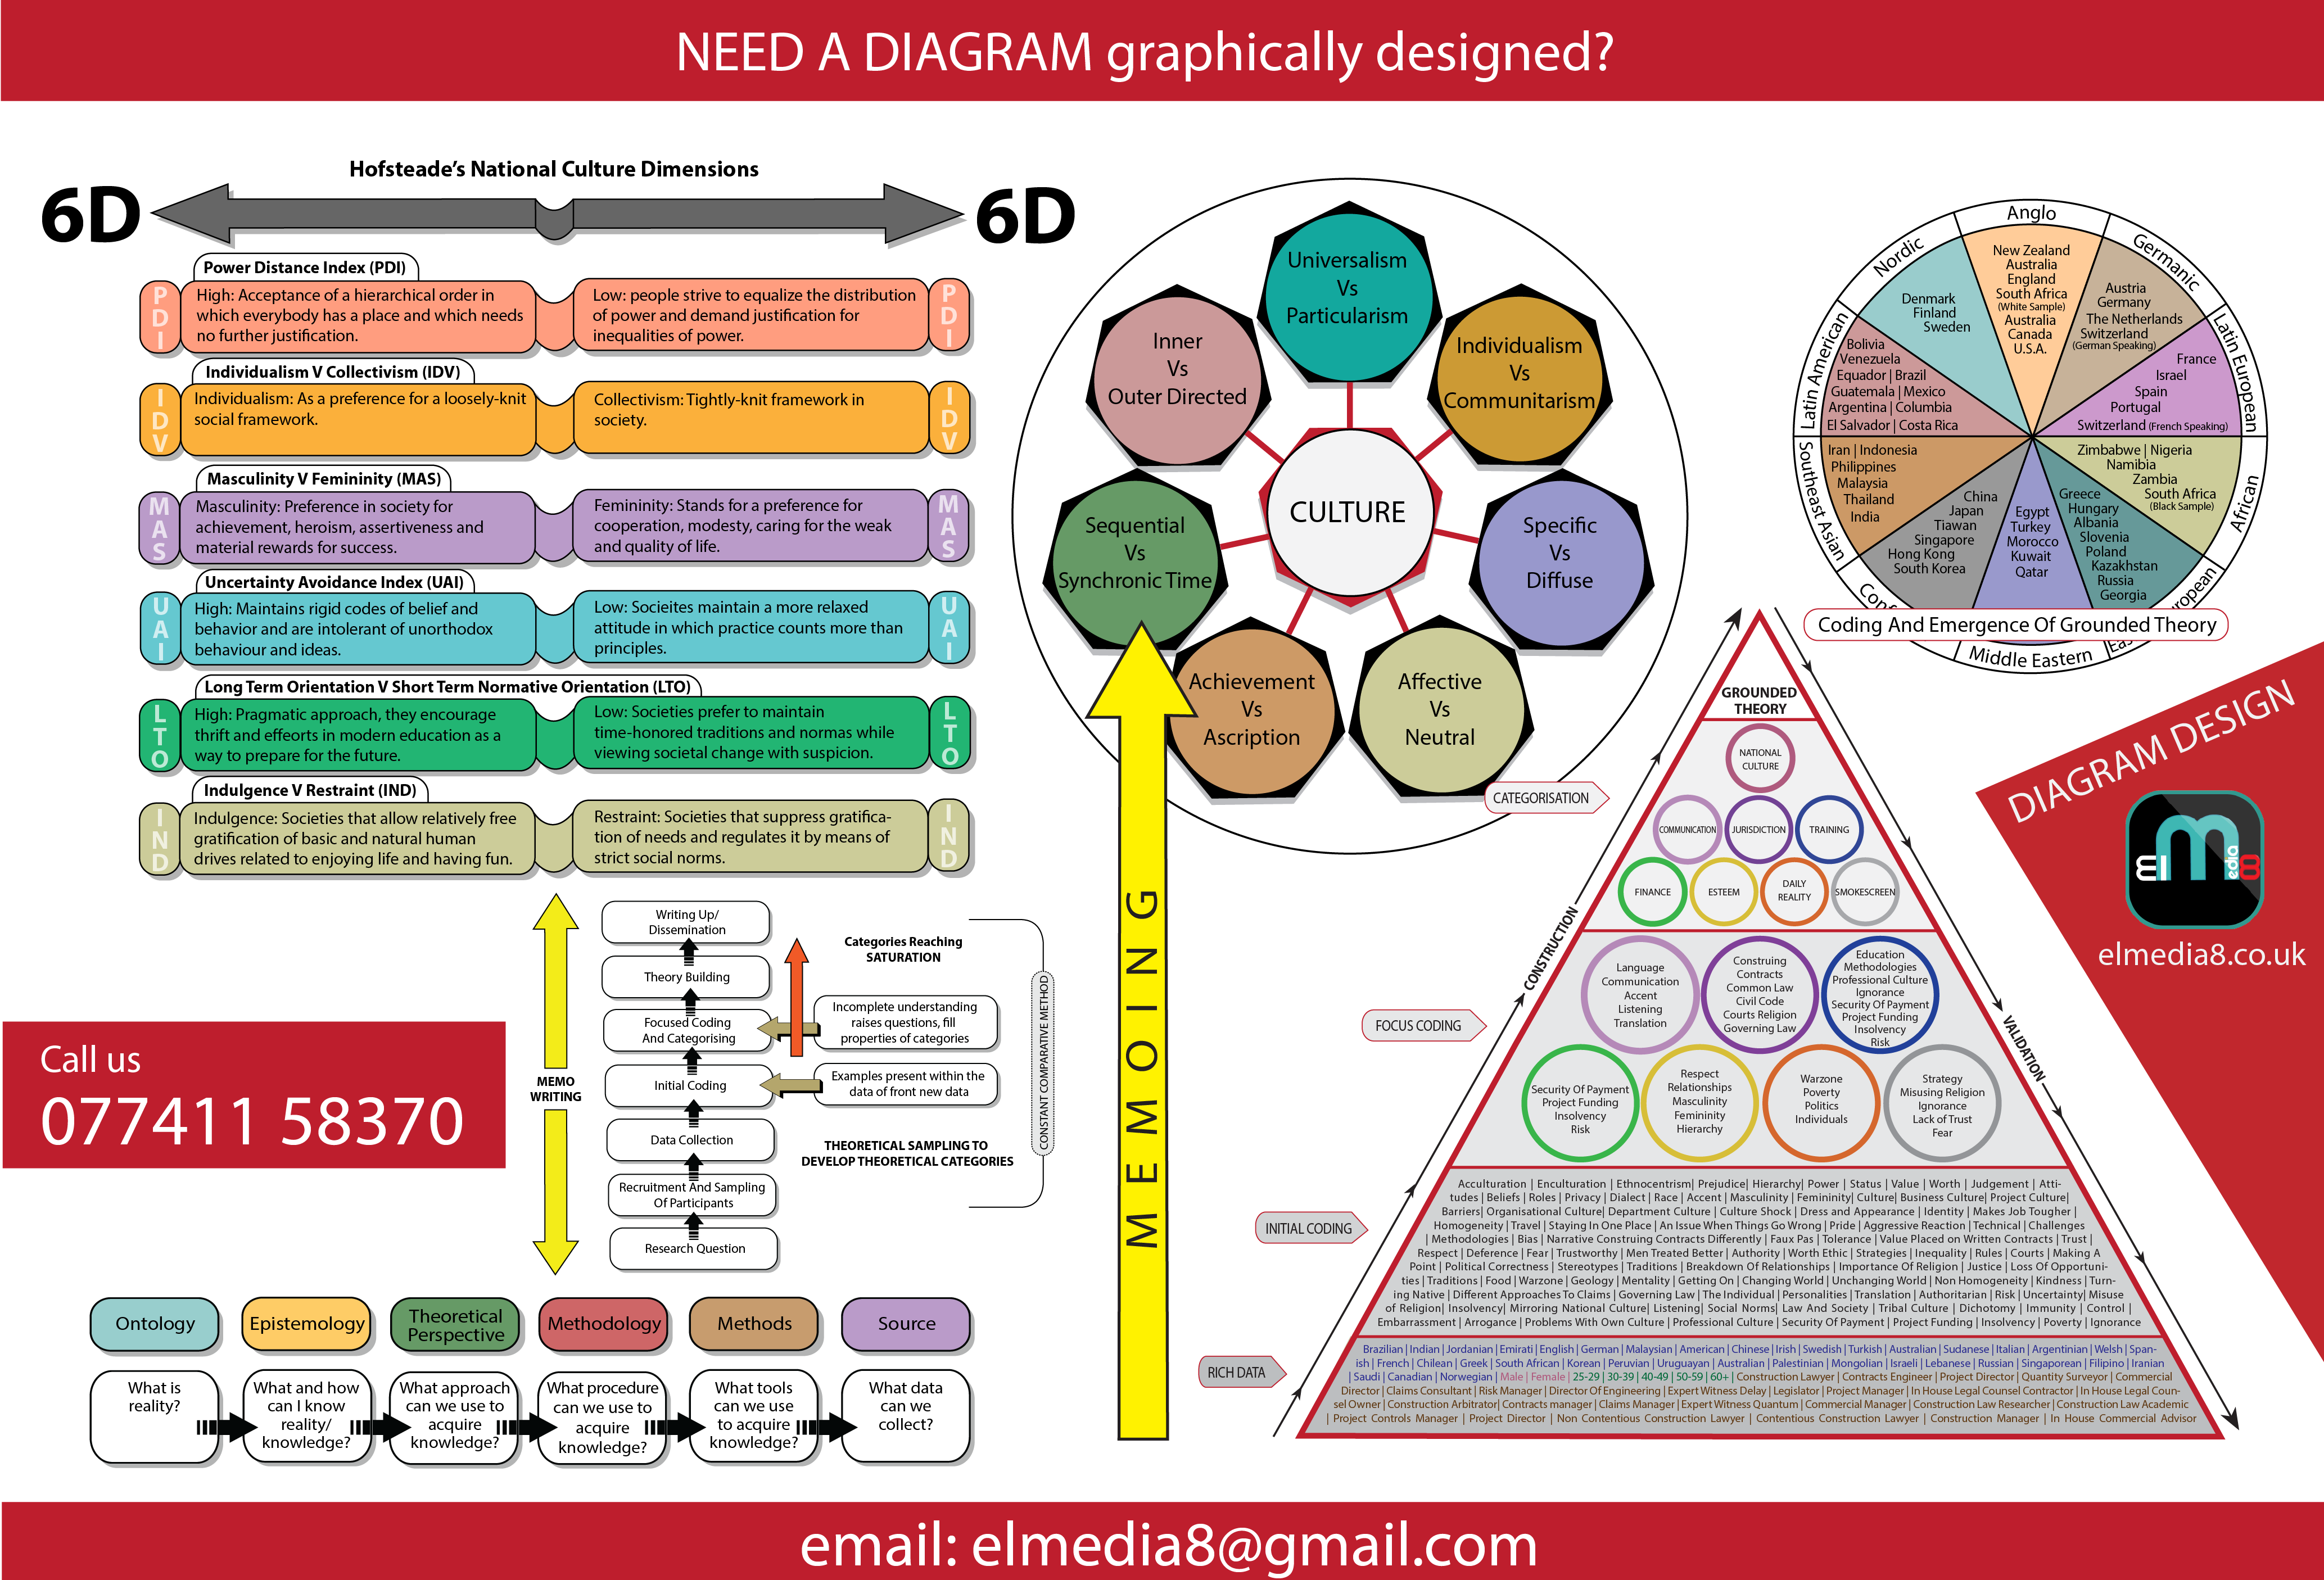 Diagram illustrator in manchester elmedia8 who doesnt love a diagram were huge fans of diagrams and really enjoy designing diagrams to be both visually appealing while communicating often quite ccuart Gallery